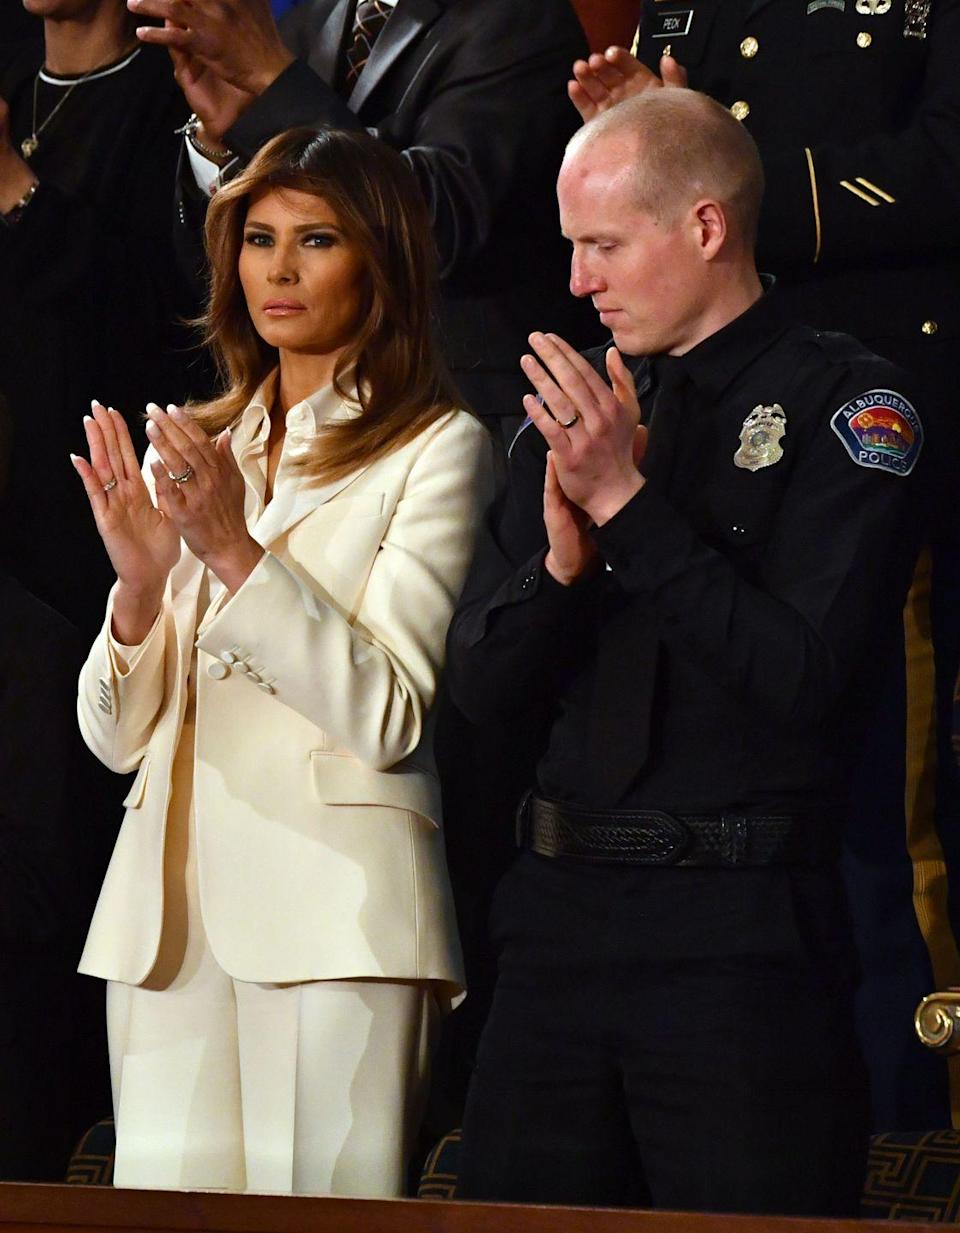 "<p>At President Trump's first State of the Union address in January 2018, Melania Trump wore a <a href=""https://www.glamour.com/story/melania-trump-all-white-suit-for-the-state-of-the-union"" rel=""nofollow noopener"" target=""_blank"" data-ylk=""slk:tailored white Christian Dior pantsuit"" class=""link rapid-noclick-resp"">tailored white Christian Dior pantsuit</a> and a Dolce & Gabbana blouse. Many people thought this was <a href=""https://www.vanityfair.com/style/2018/01/melania-trump-state-of-the-union-white"" rel=""nofollow noopener"" target=""_blank"" data-ylk=""slk:a nod"" class=""link rapid-noclick-resp"">a nod</a> to Hillary Clinton and the Democratic women <a href=""https://www.cnn.com/2017/02/28/politics/democratic-women-wear-white-donald-trump-speech/index.html"" rel=""nofollow noopener"" target=""_blank"" data-ylk=""slk:who wore white"" class=""link rapid-noclick-resp"">who wore white</a> to the presidential address in 2017 to pay homage to the suffragette movement and women's rights. </p>"